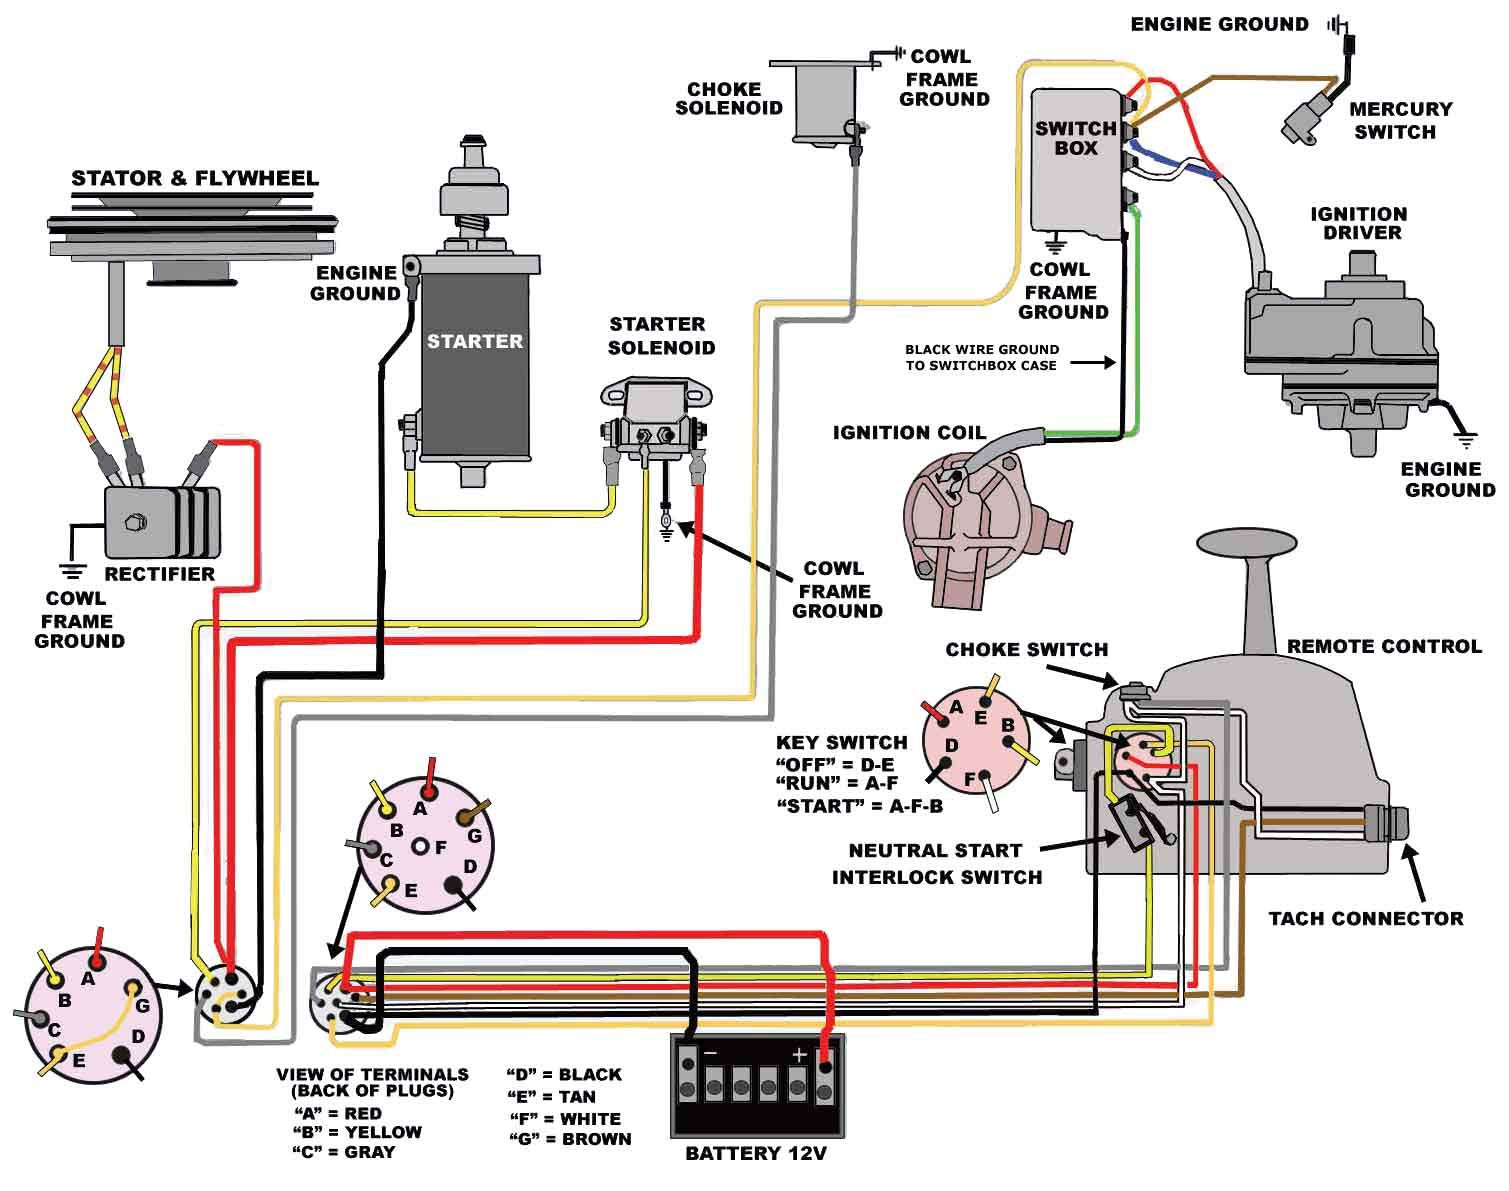 13cfb2d962bcd0c03103625817b7d51d mercury outboard wiring diagram diagram pinterest mercury wiring diagram at gsmportal.co